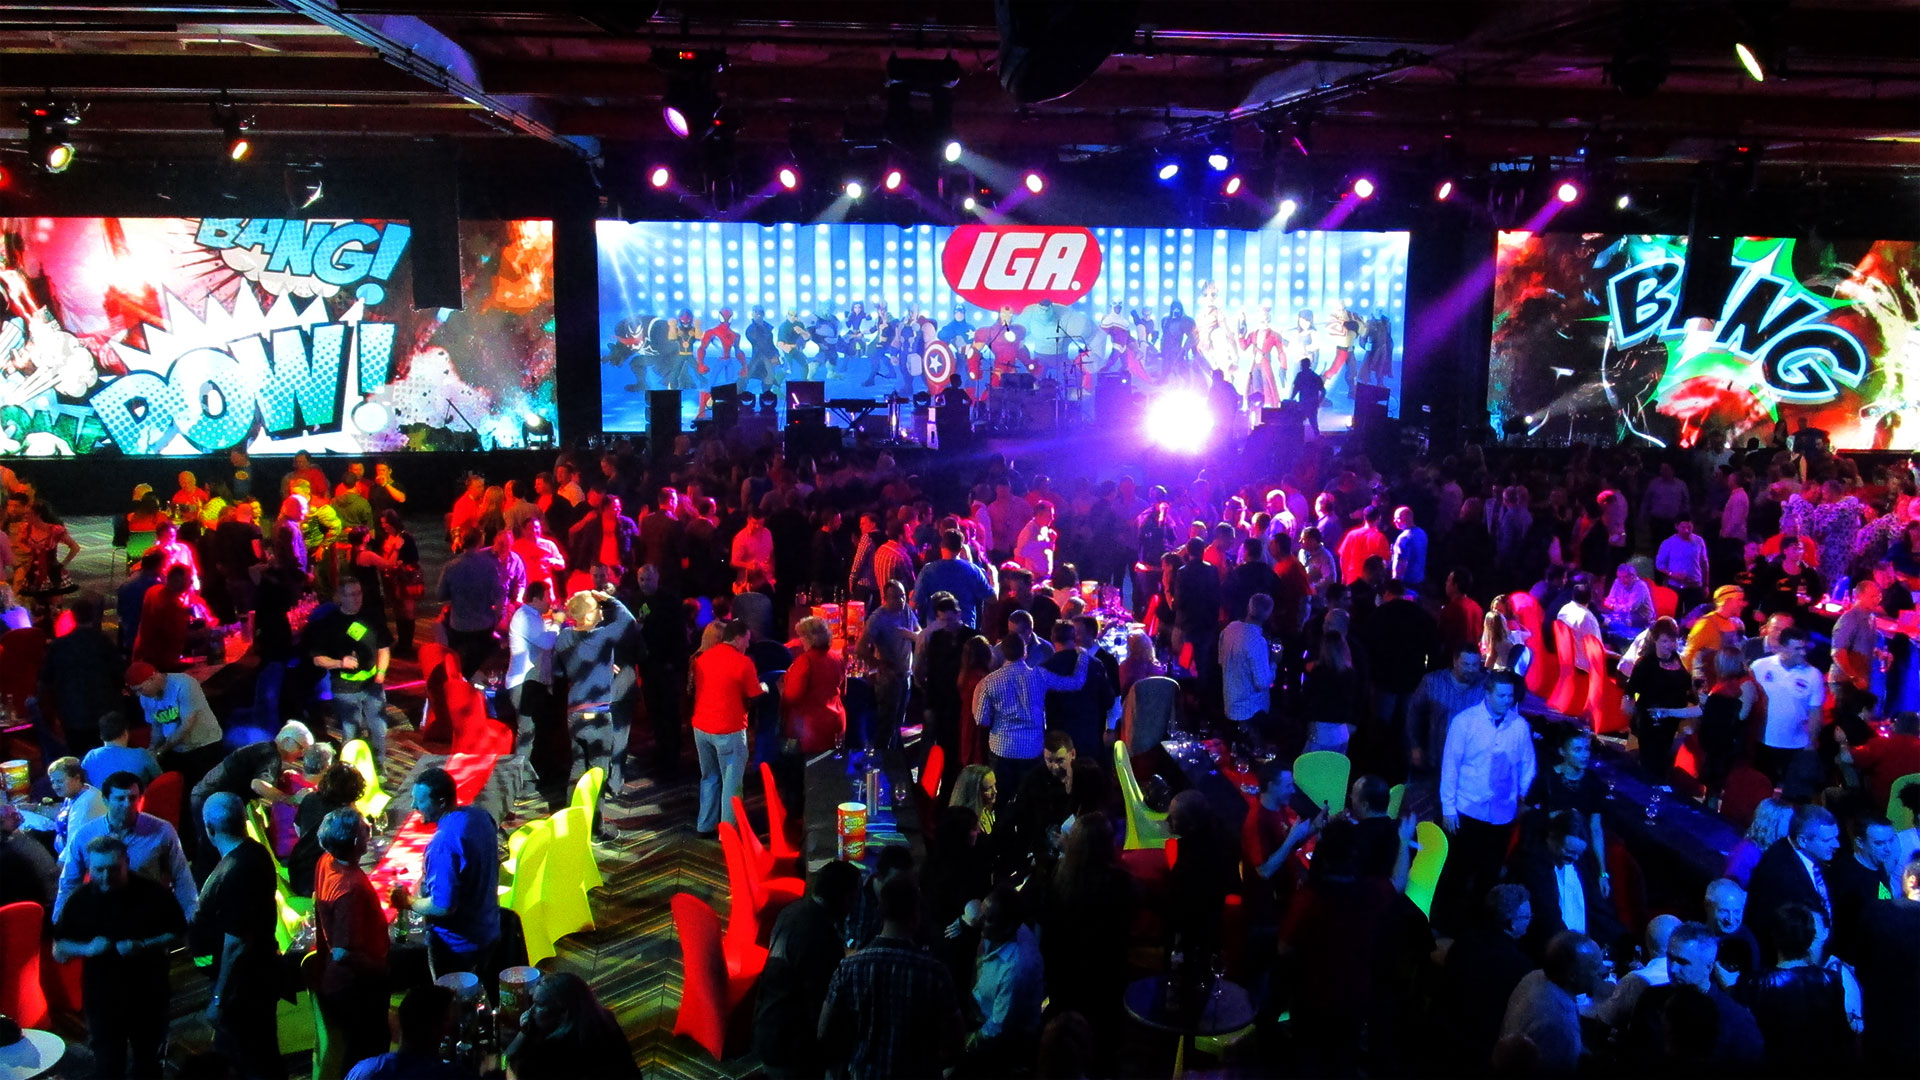 LED Screens for IGA Gala Dinner 2015